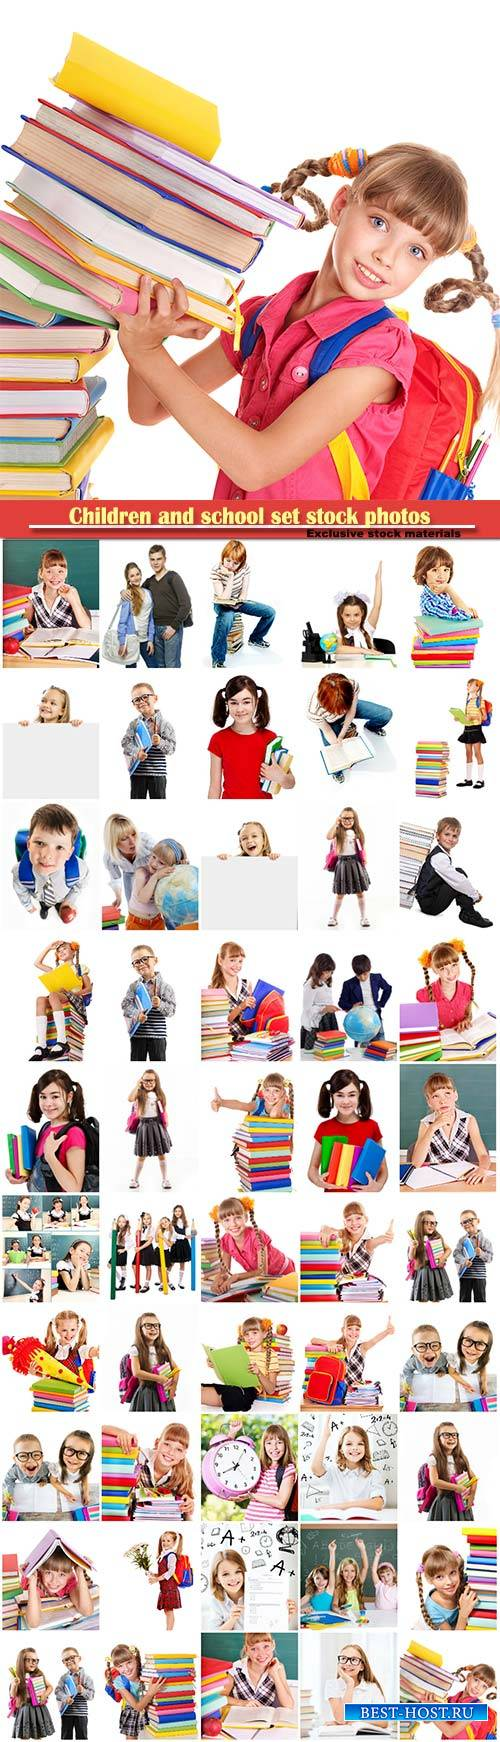 Children and school set stock photos